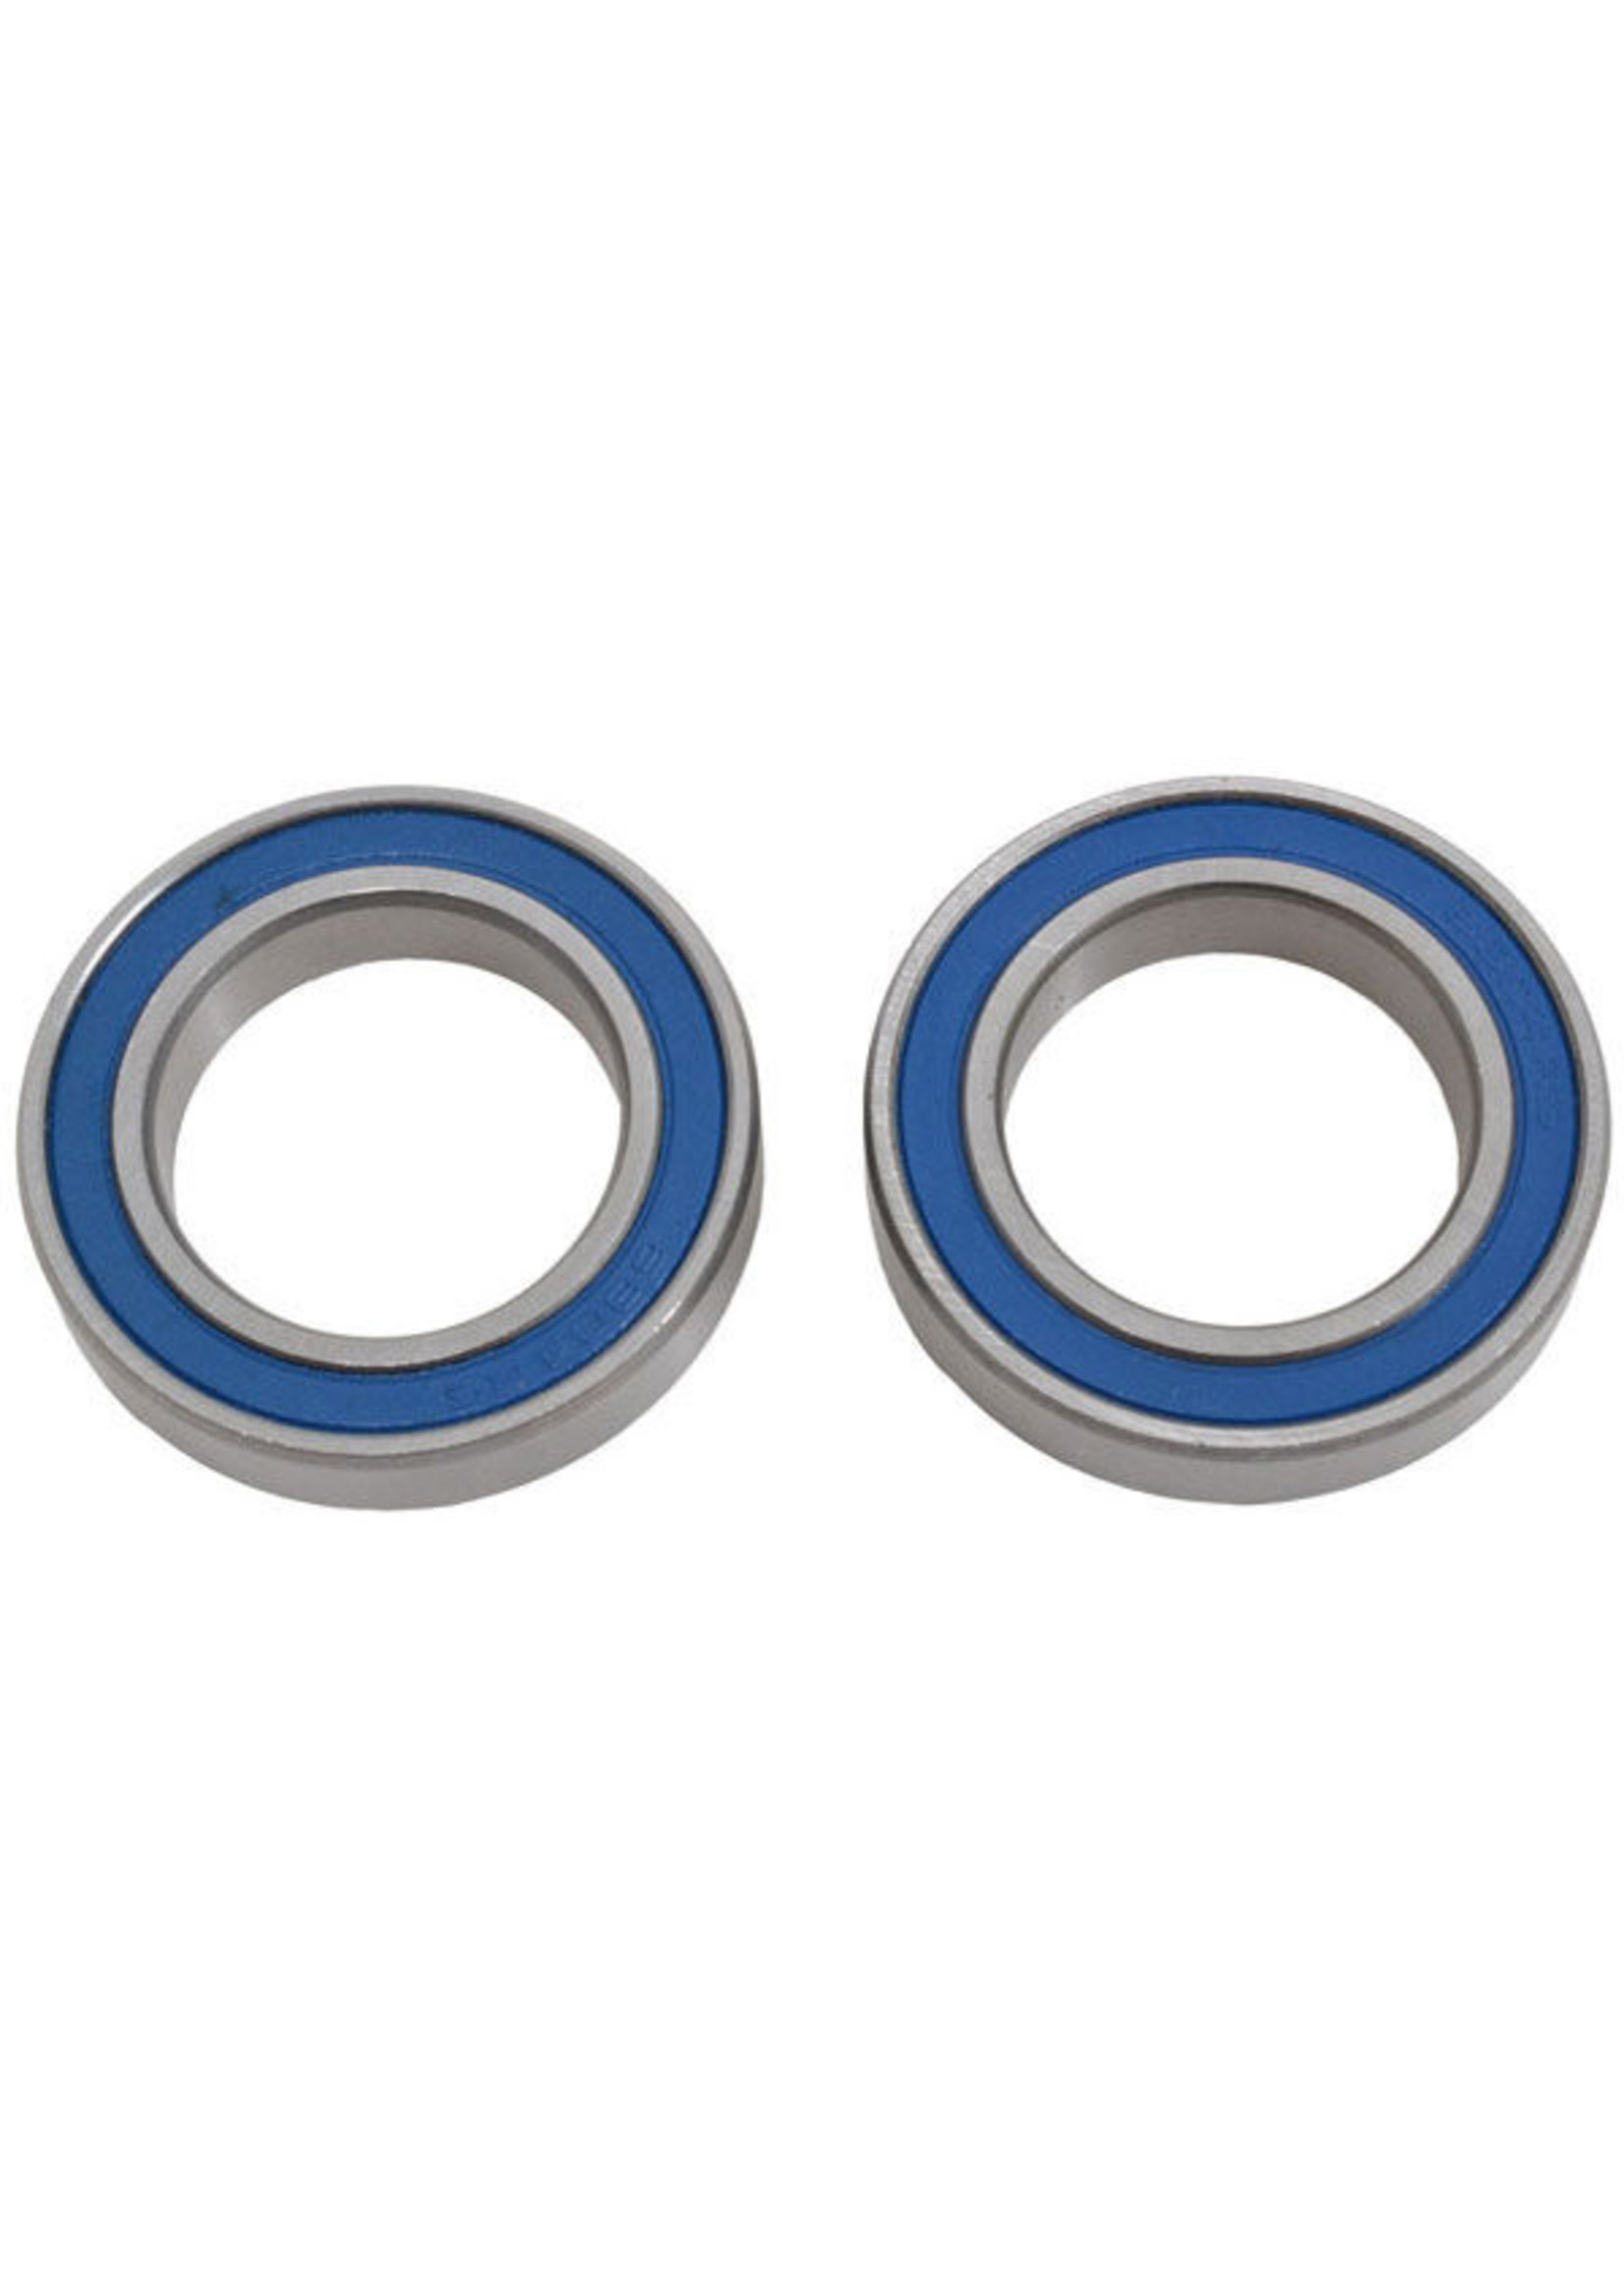 RPM RPM81670 RPM Replacement Bearings for Oversized Traxxas X-Maxx Axle Carriers (81732)